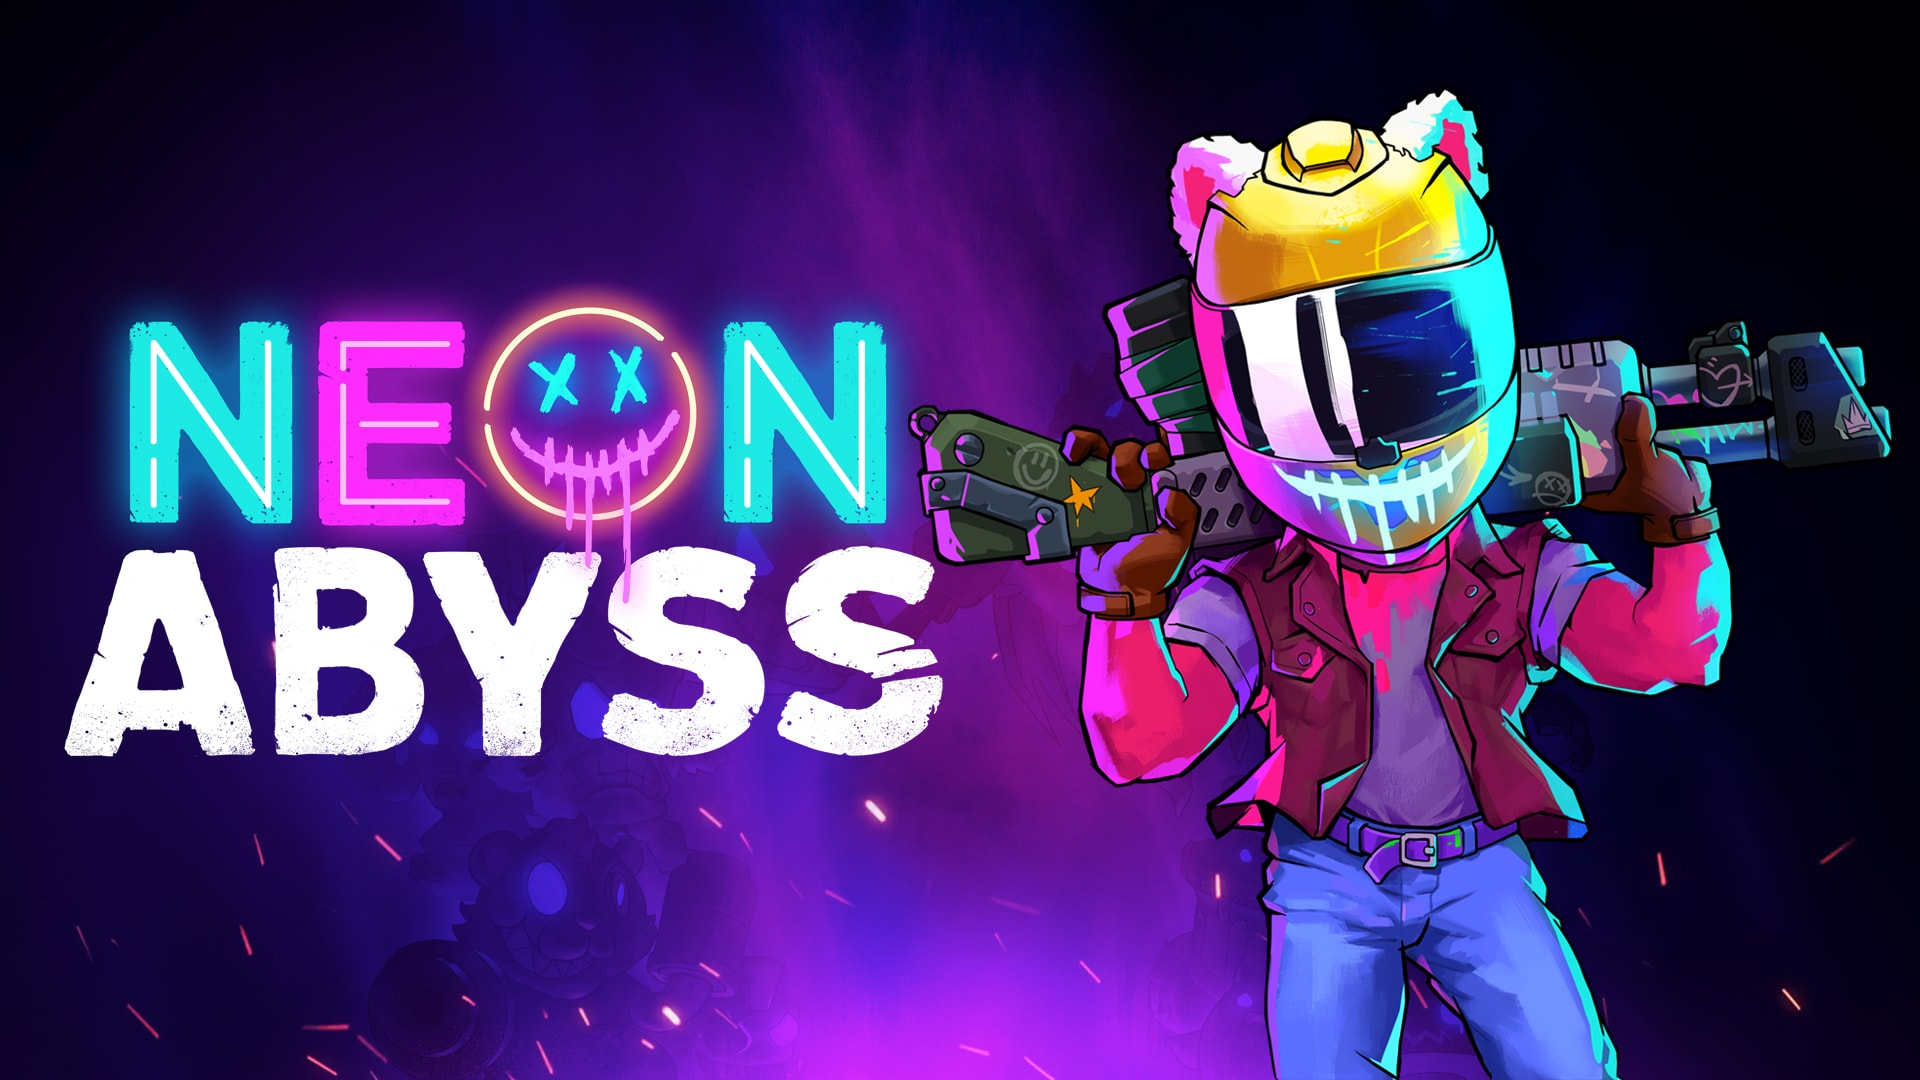 Introducing Neon Abyss